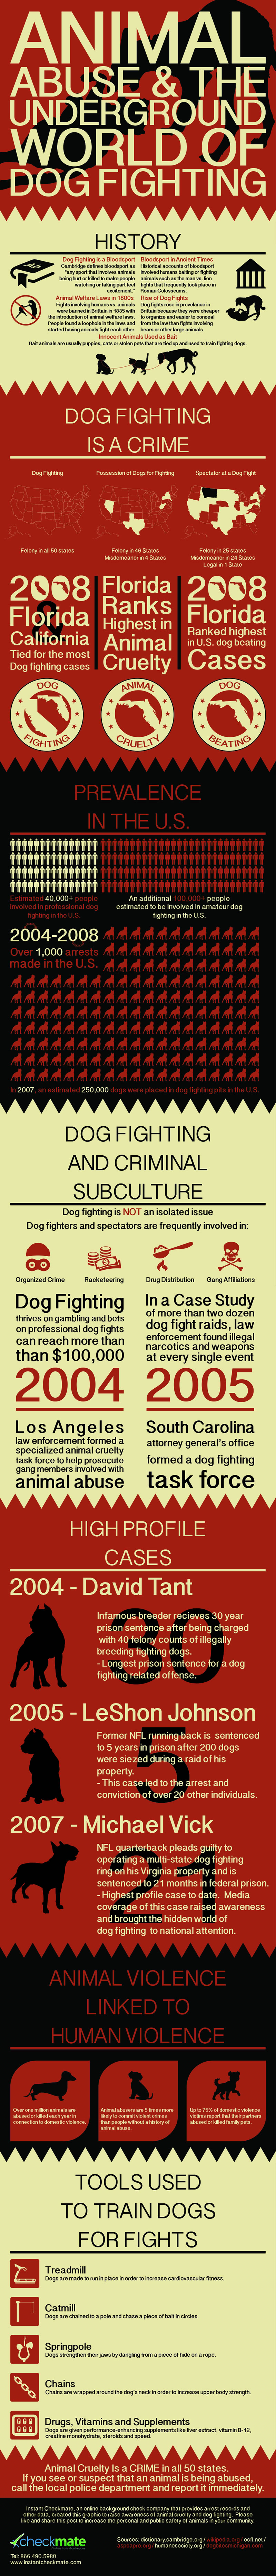 Facts About Dog Fighting and Animal Abuse